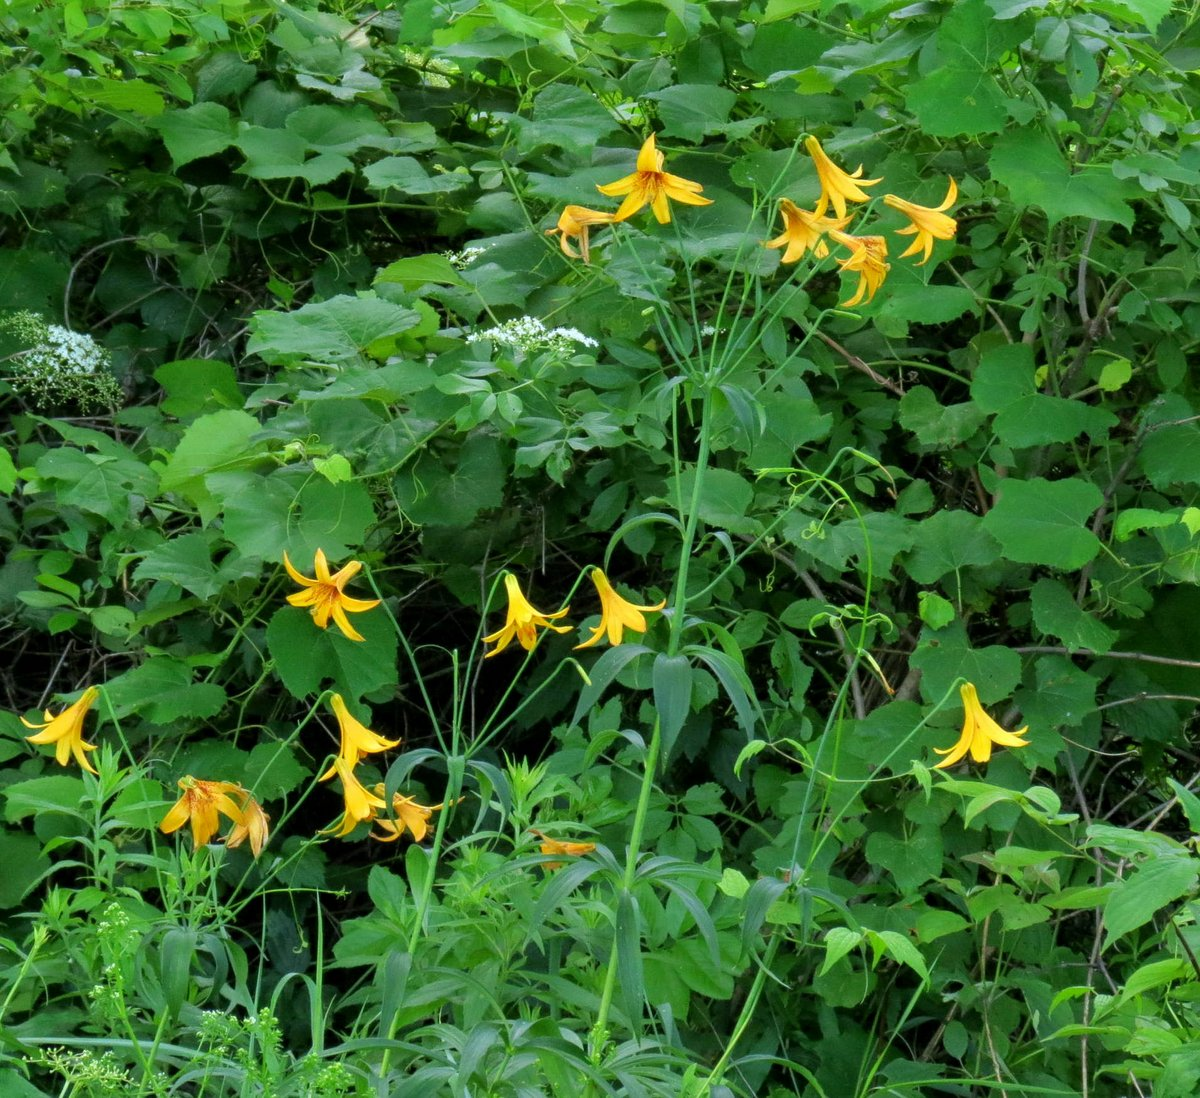 1. Canada Lilies